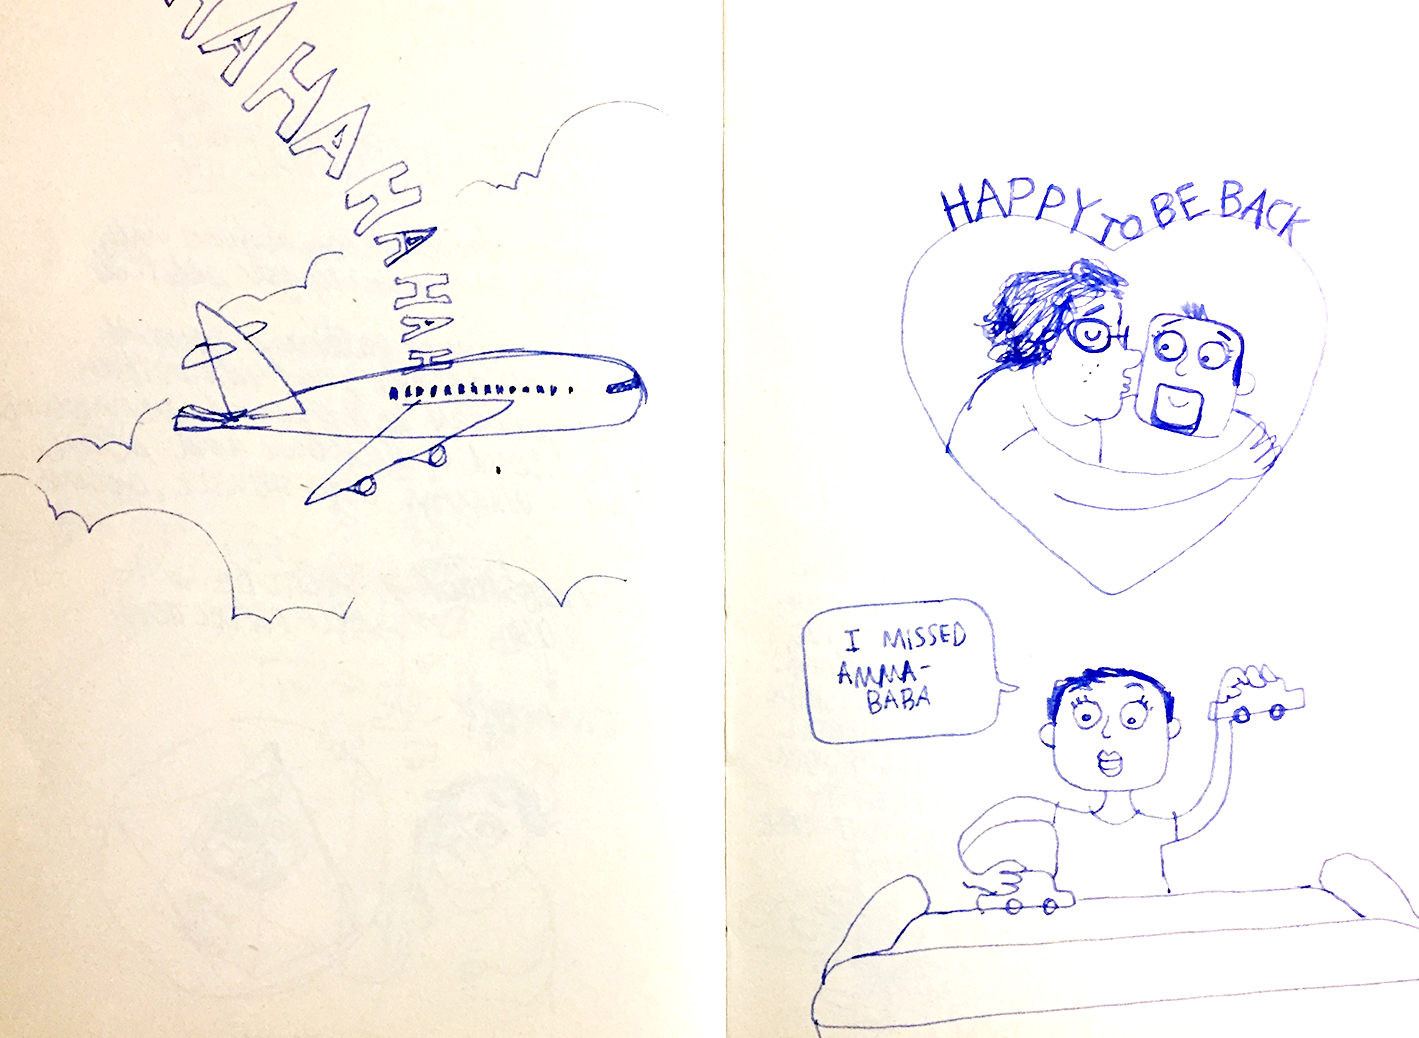 Airports_spread_x